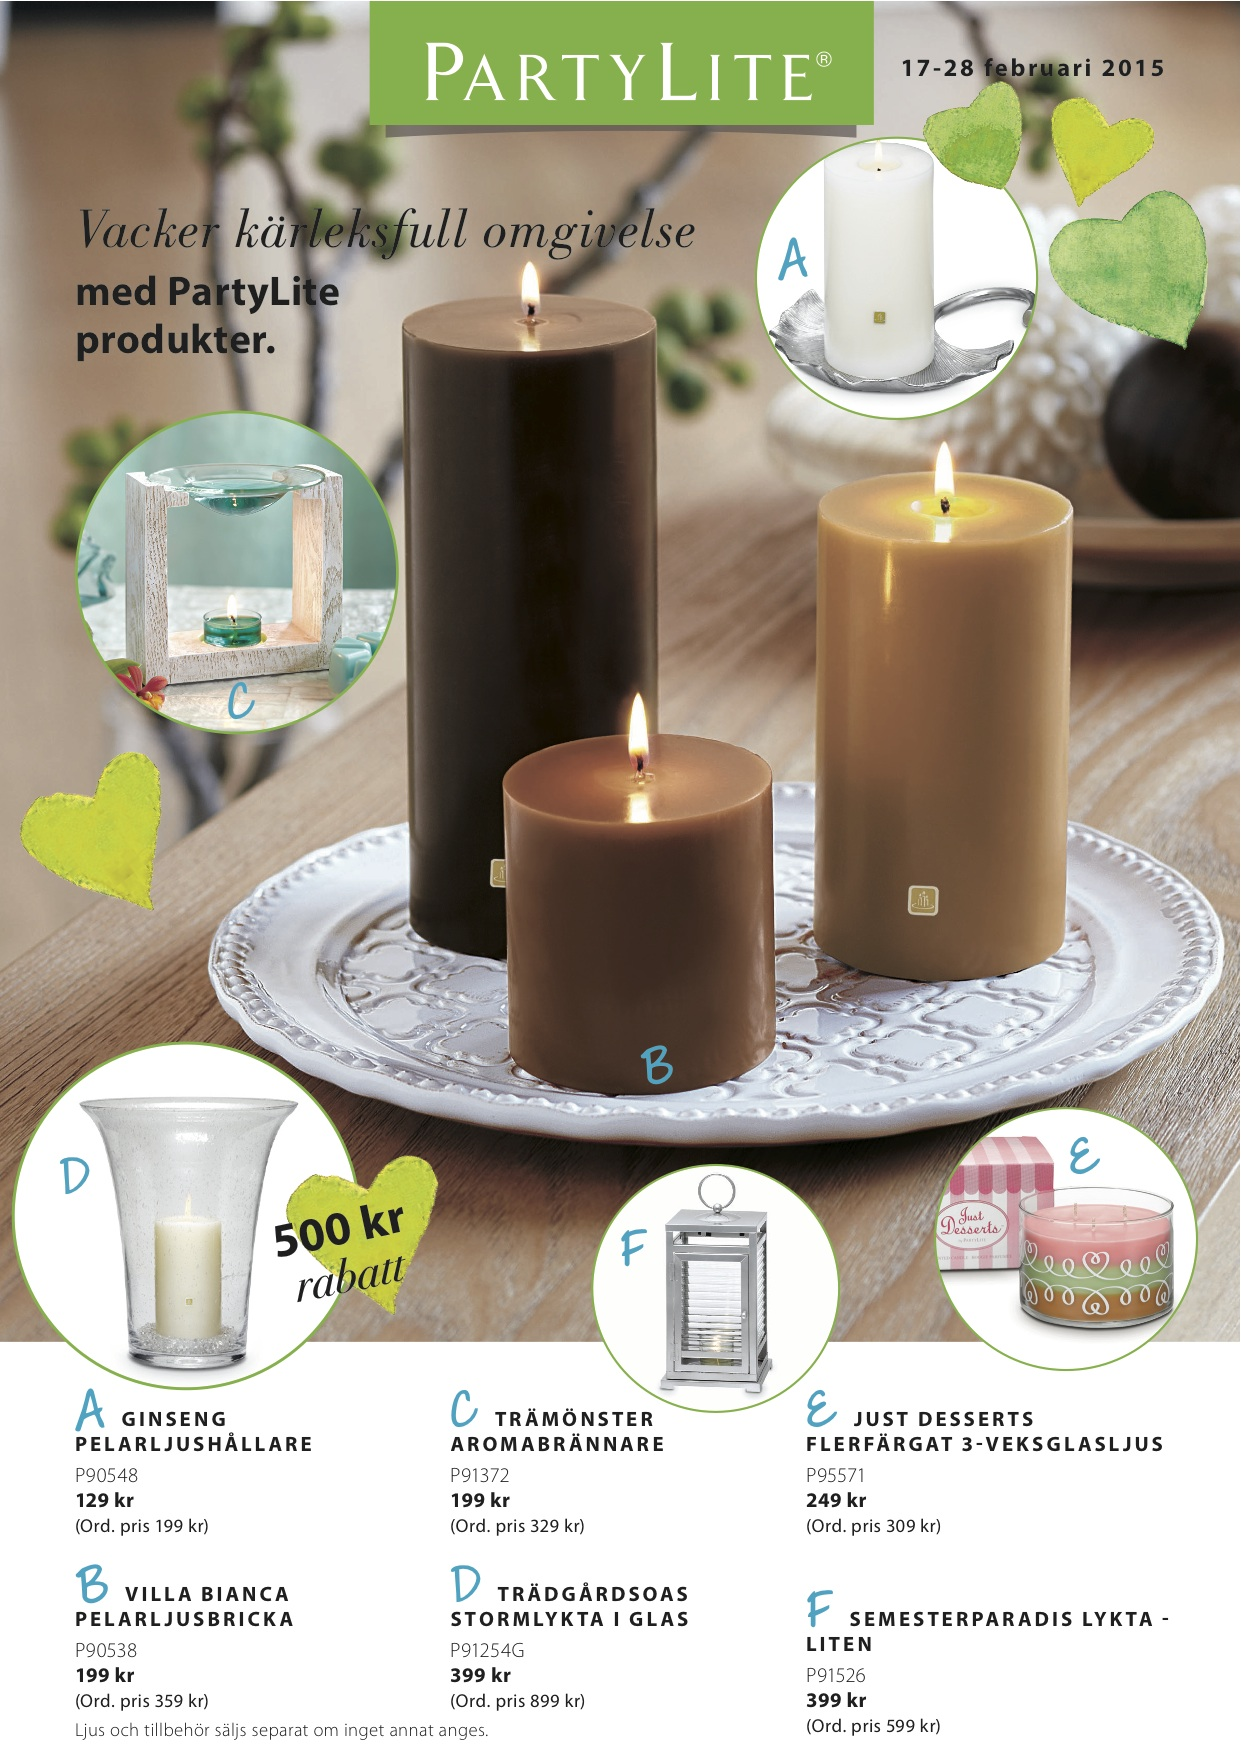 PartyLite 2015 FEBRUARY 17-28